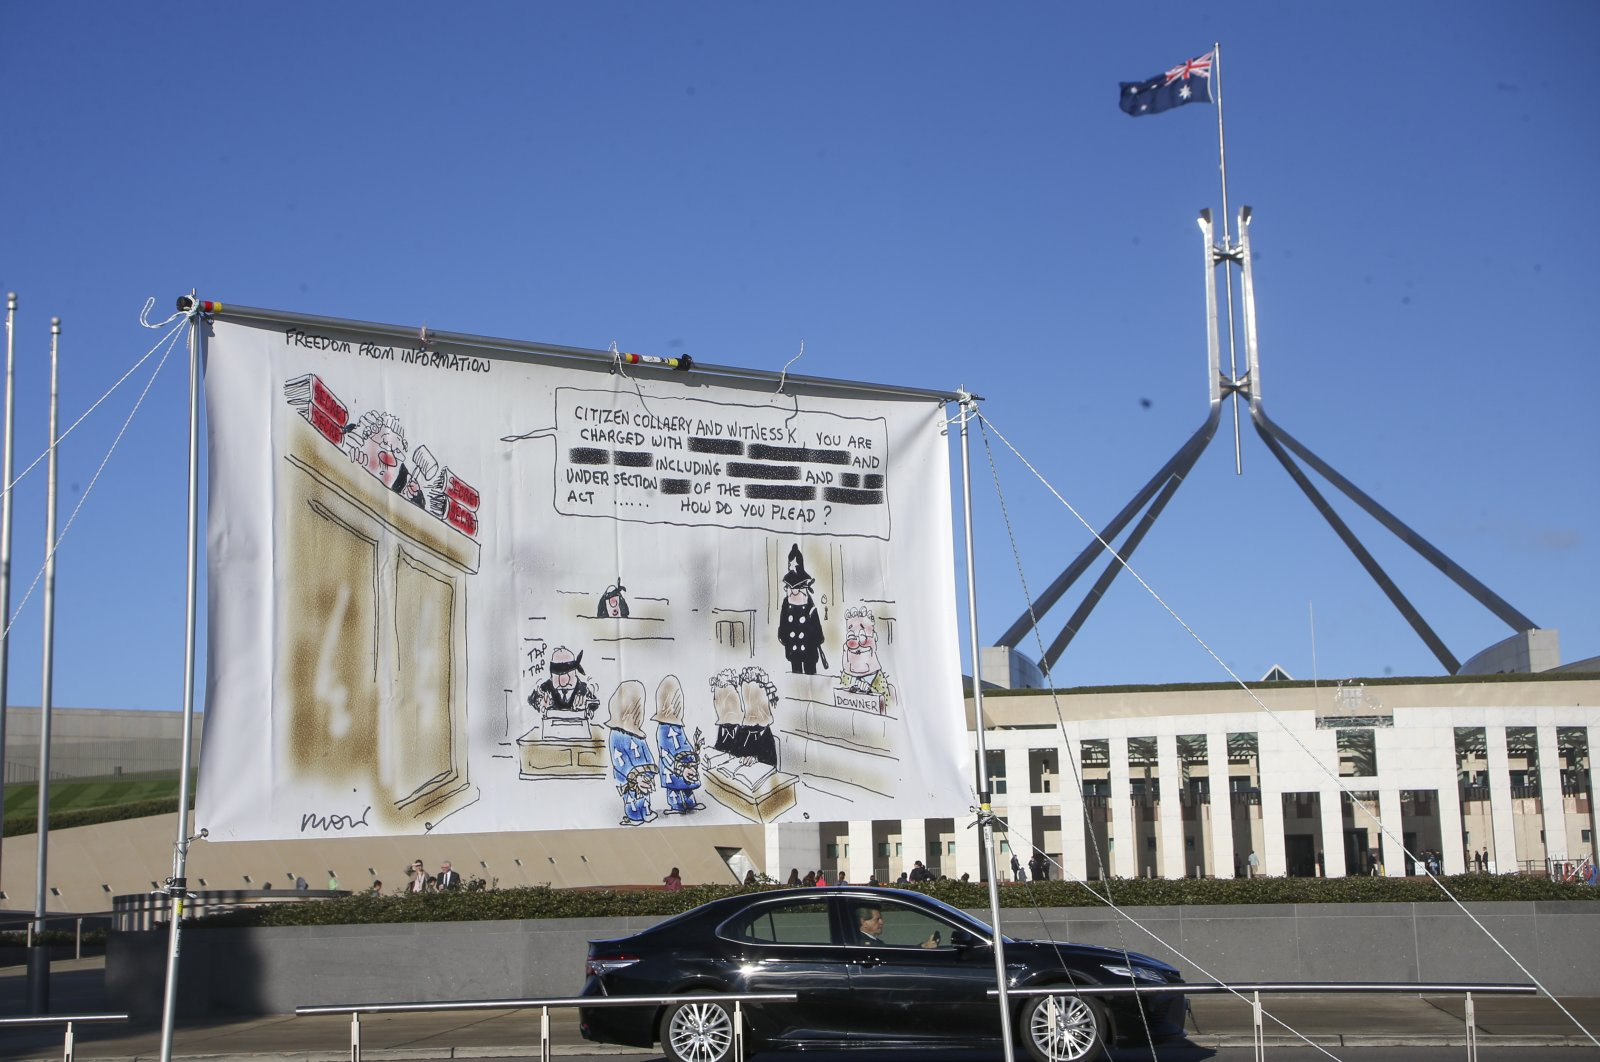 A protest banner hangs outside Parliament House in the Australian capital during a protest against the prosecution of lawyer Bernard Collaery. Critics of the secret prosecutions of a former Australian spy and his lawyer argue they are another example of a government concealing political embarrassment under the guise of national security, June 17, 2021, Canberra, ACT, Australia. (AP Photo)